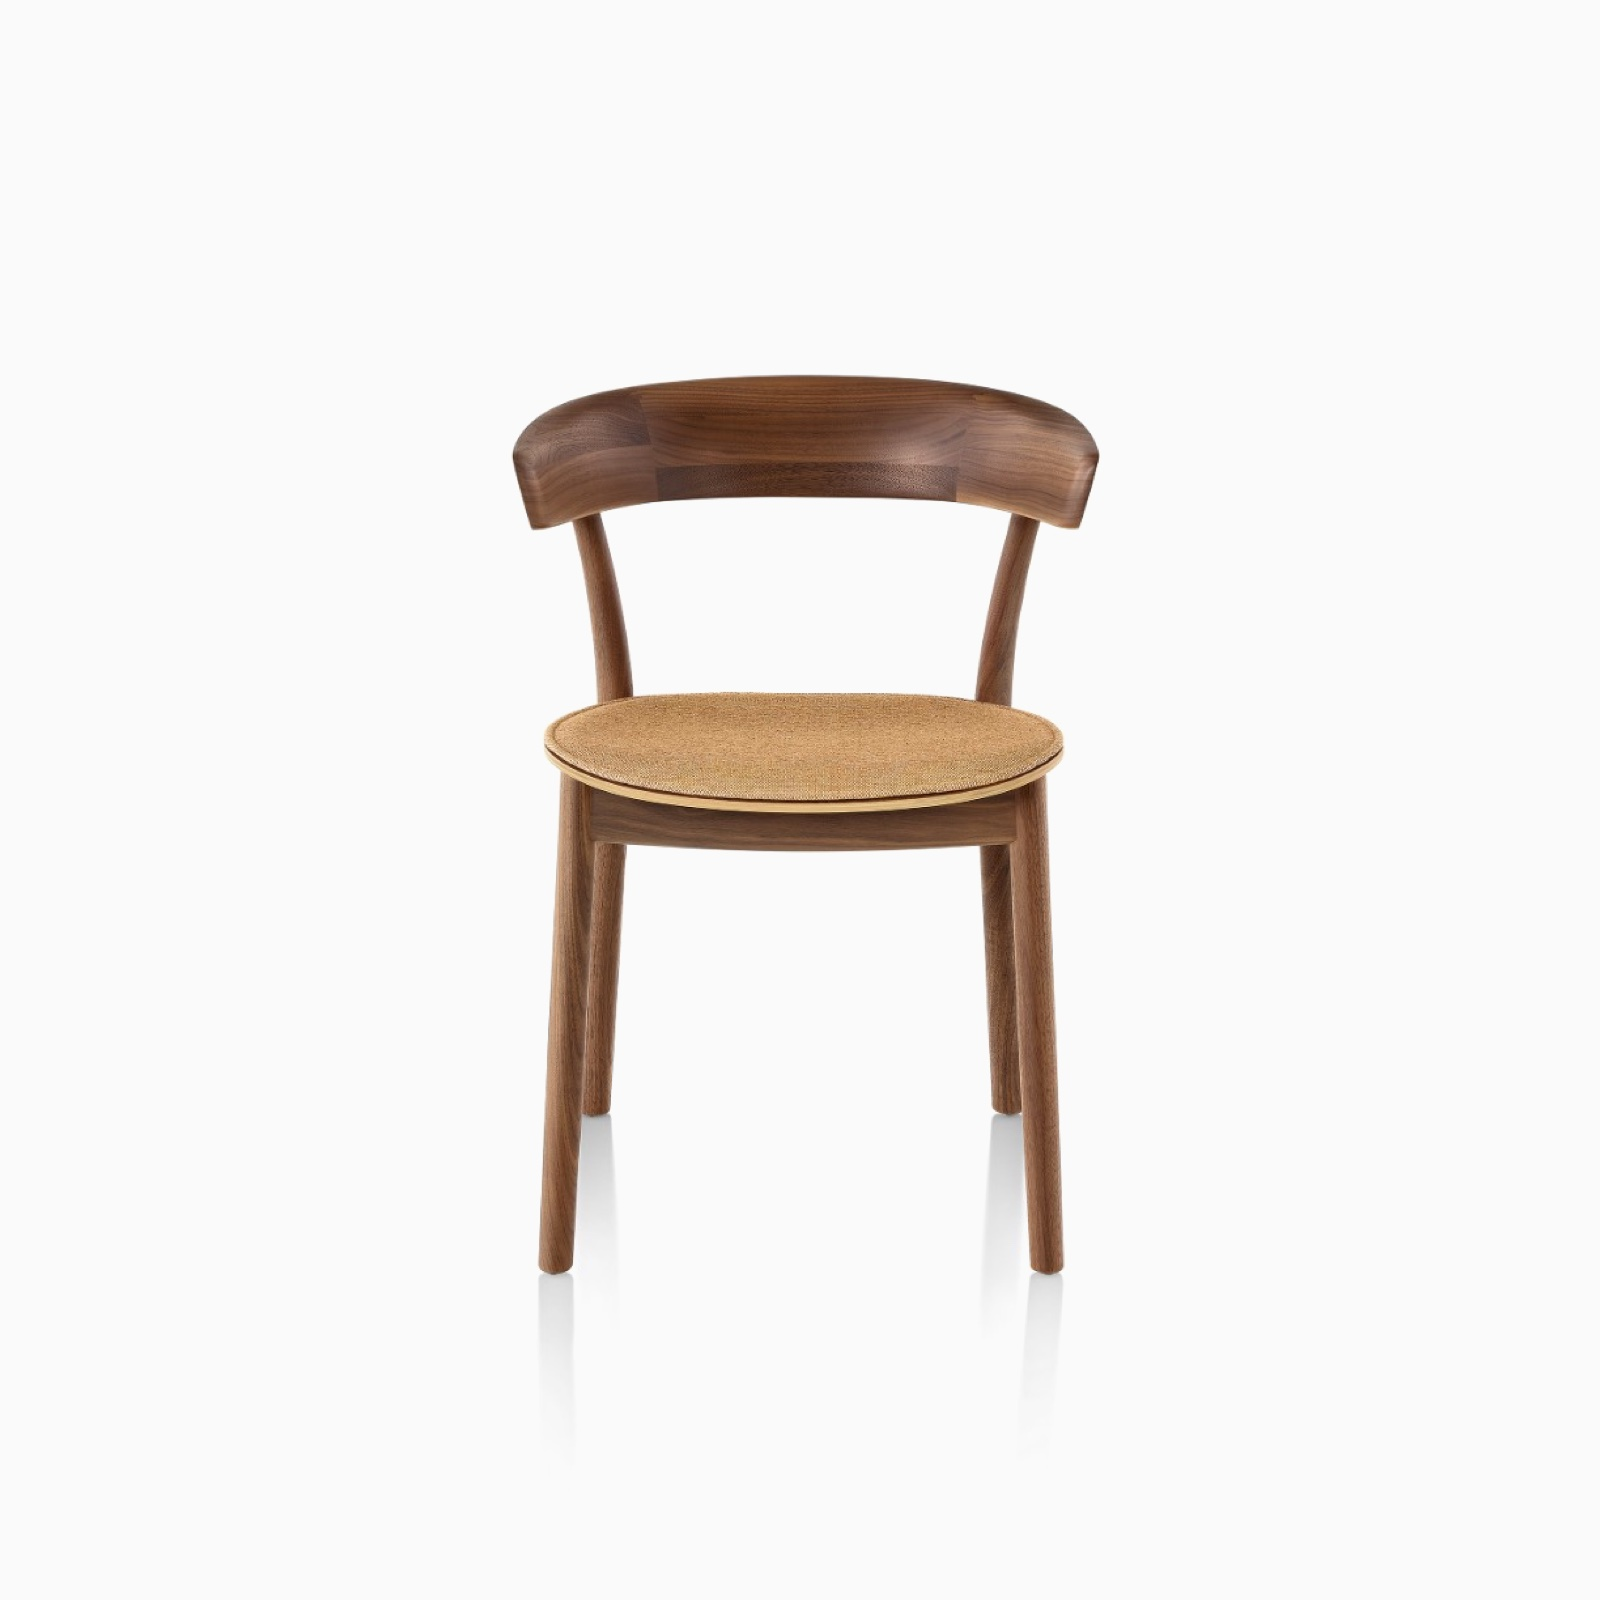 A Leeway Chair with a Walnut frame, featuring a copper colored upholstered seat, viewed from the front.